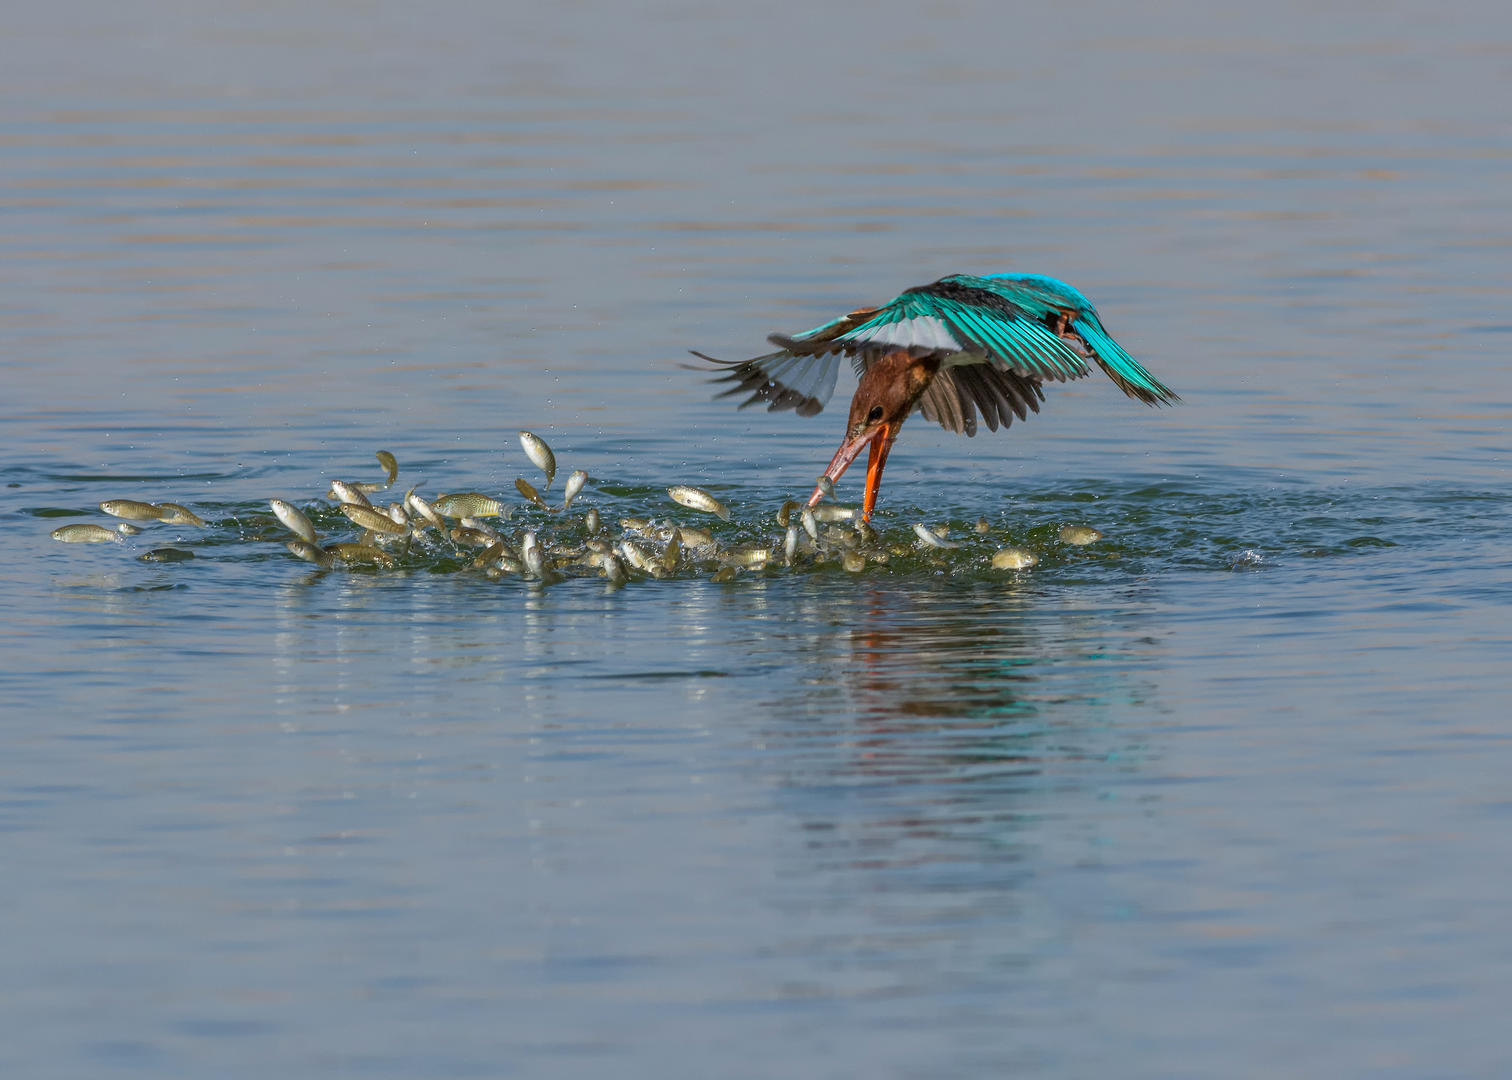 Diving Kingfisher © Malek Alhazzaa